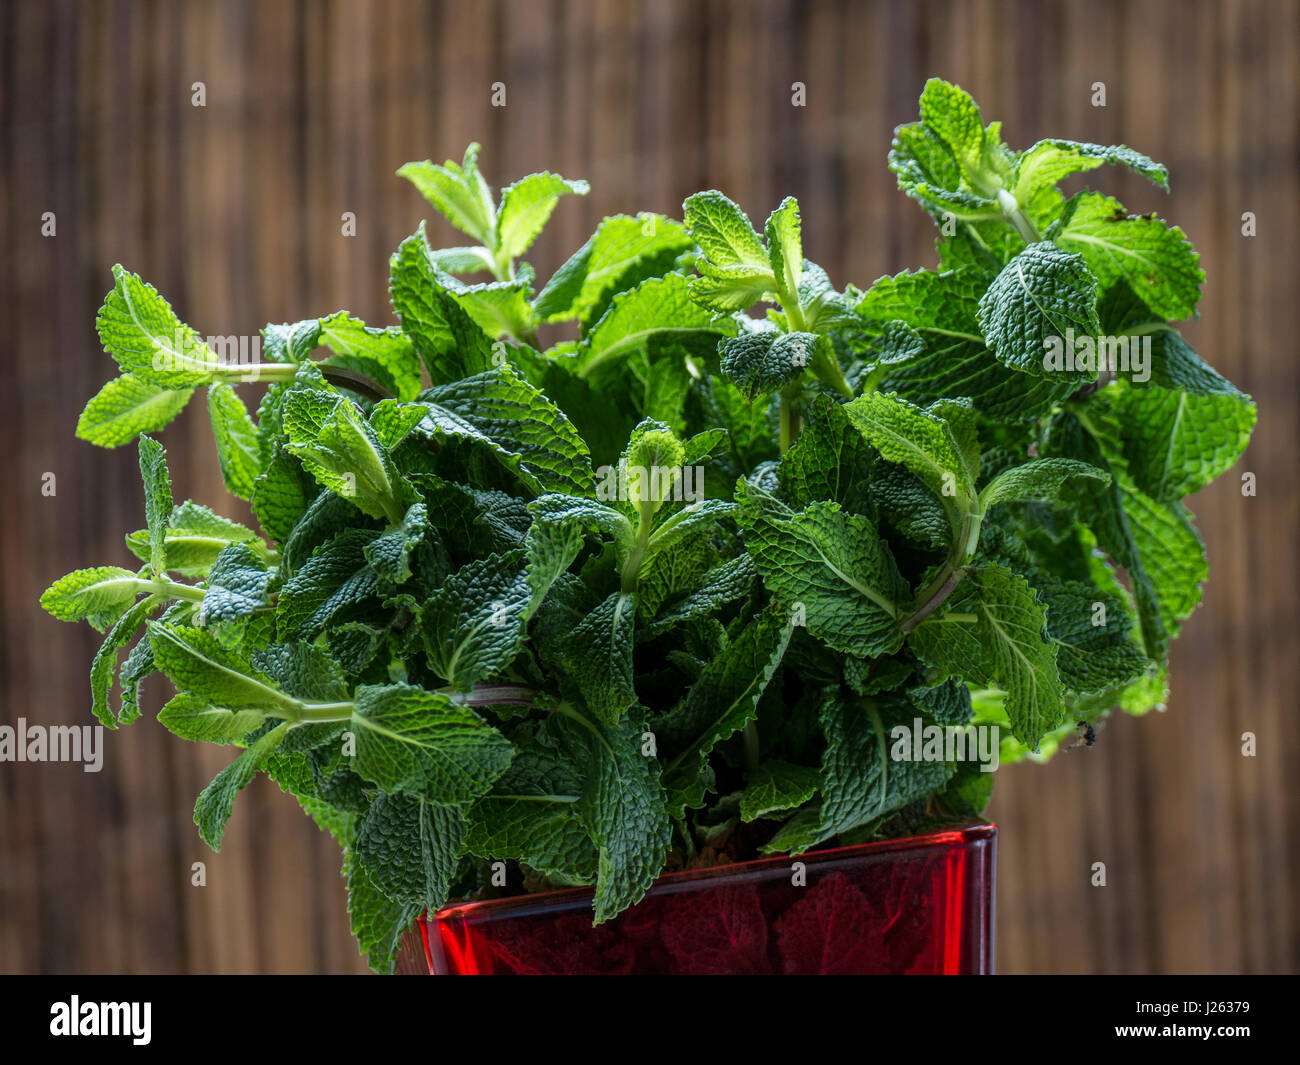 Fresh fulsome sprig of aromatic fresh mint leaves near open kitchen window - Stock Image